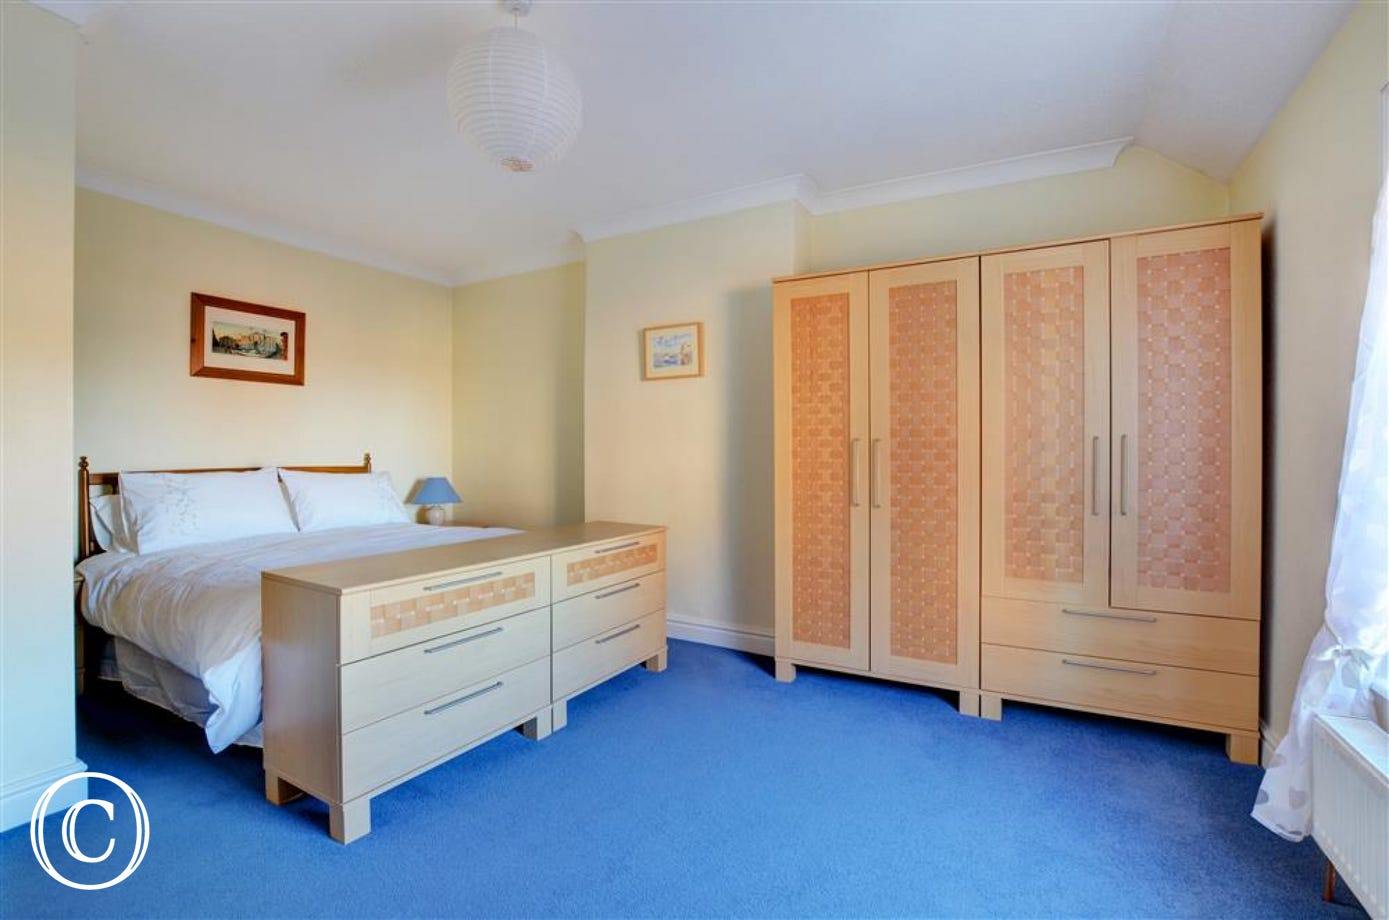 Spacious main bedroom with king sized bed